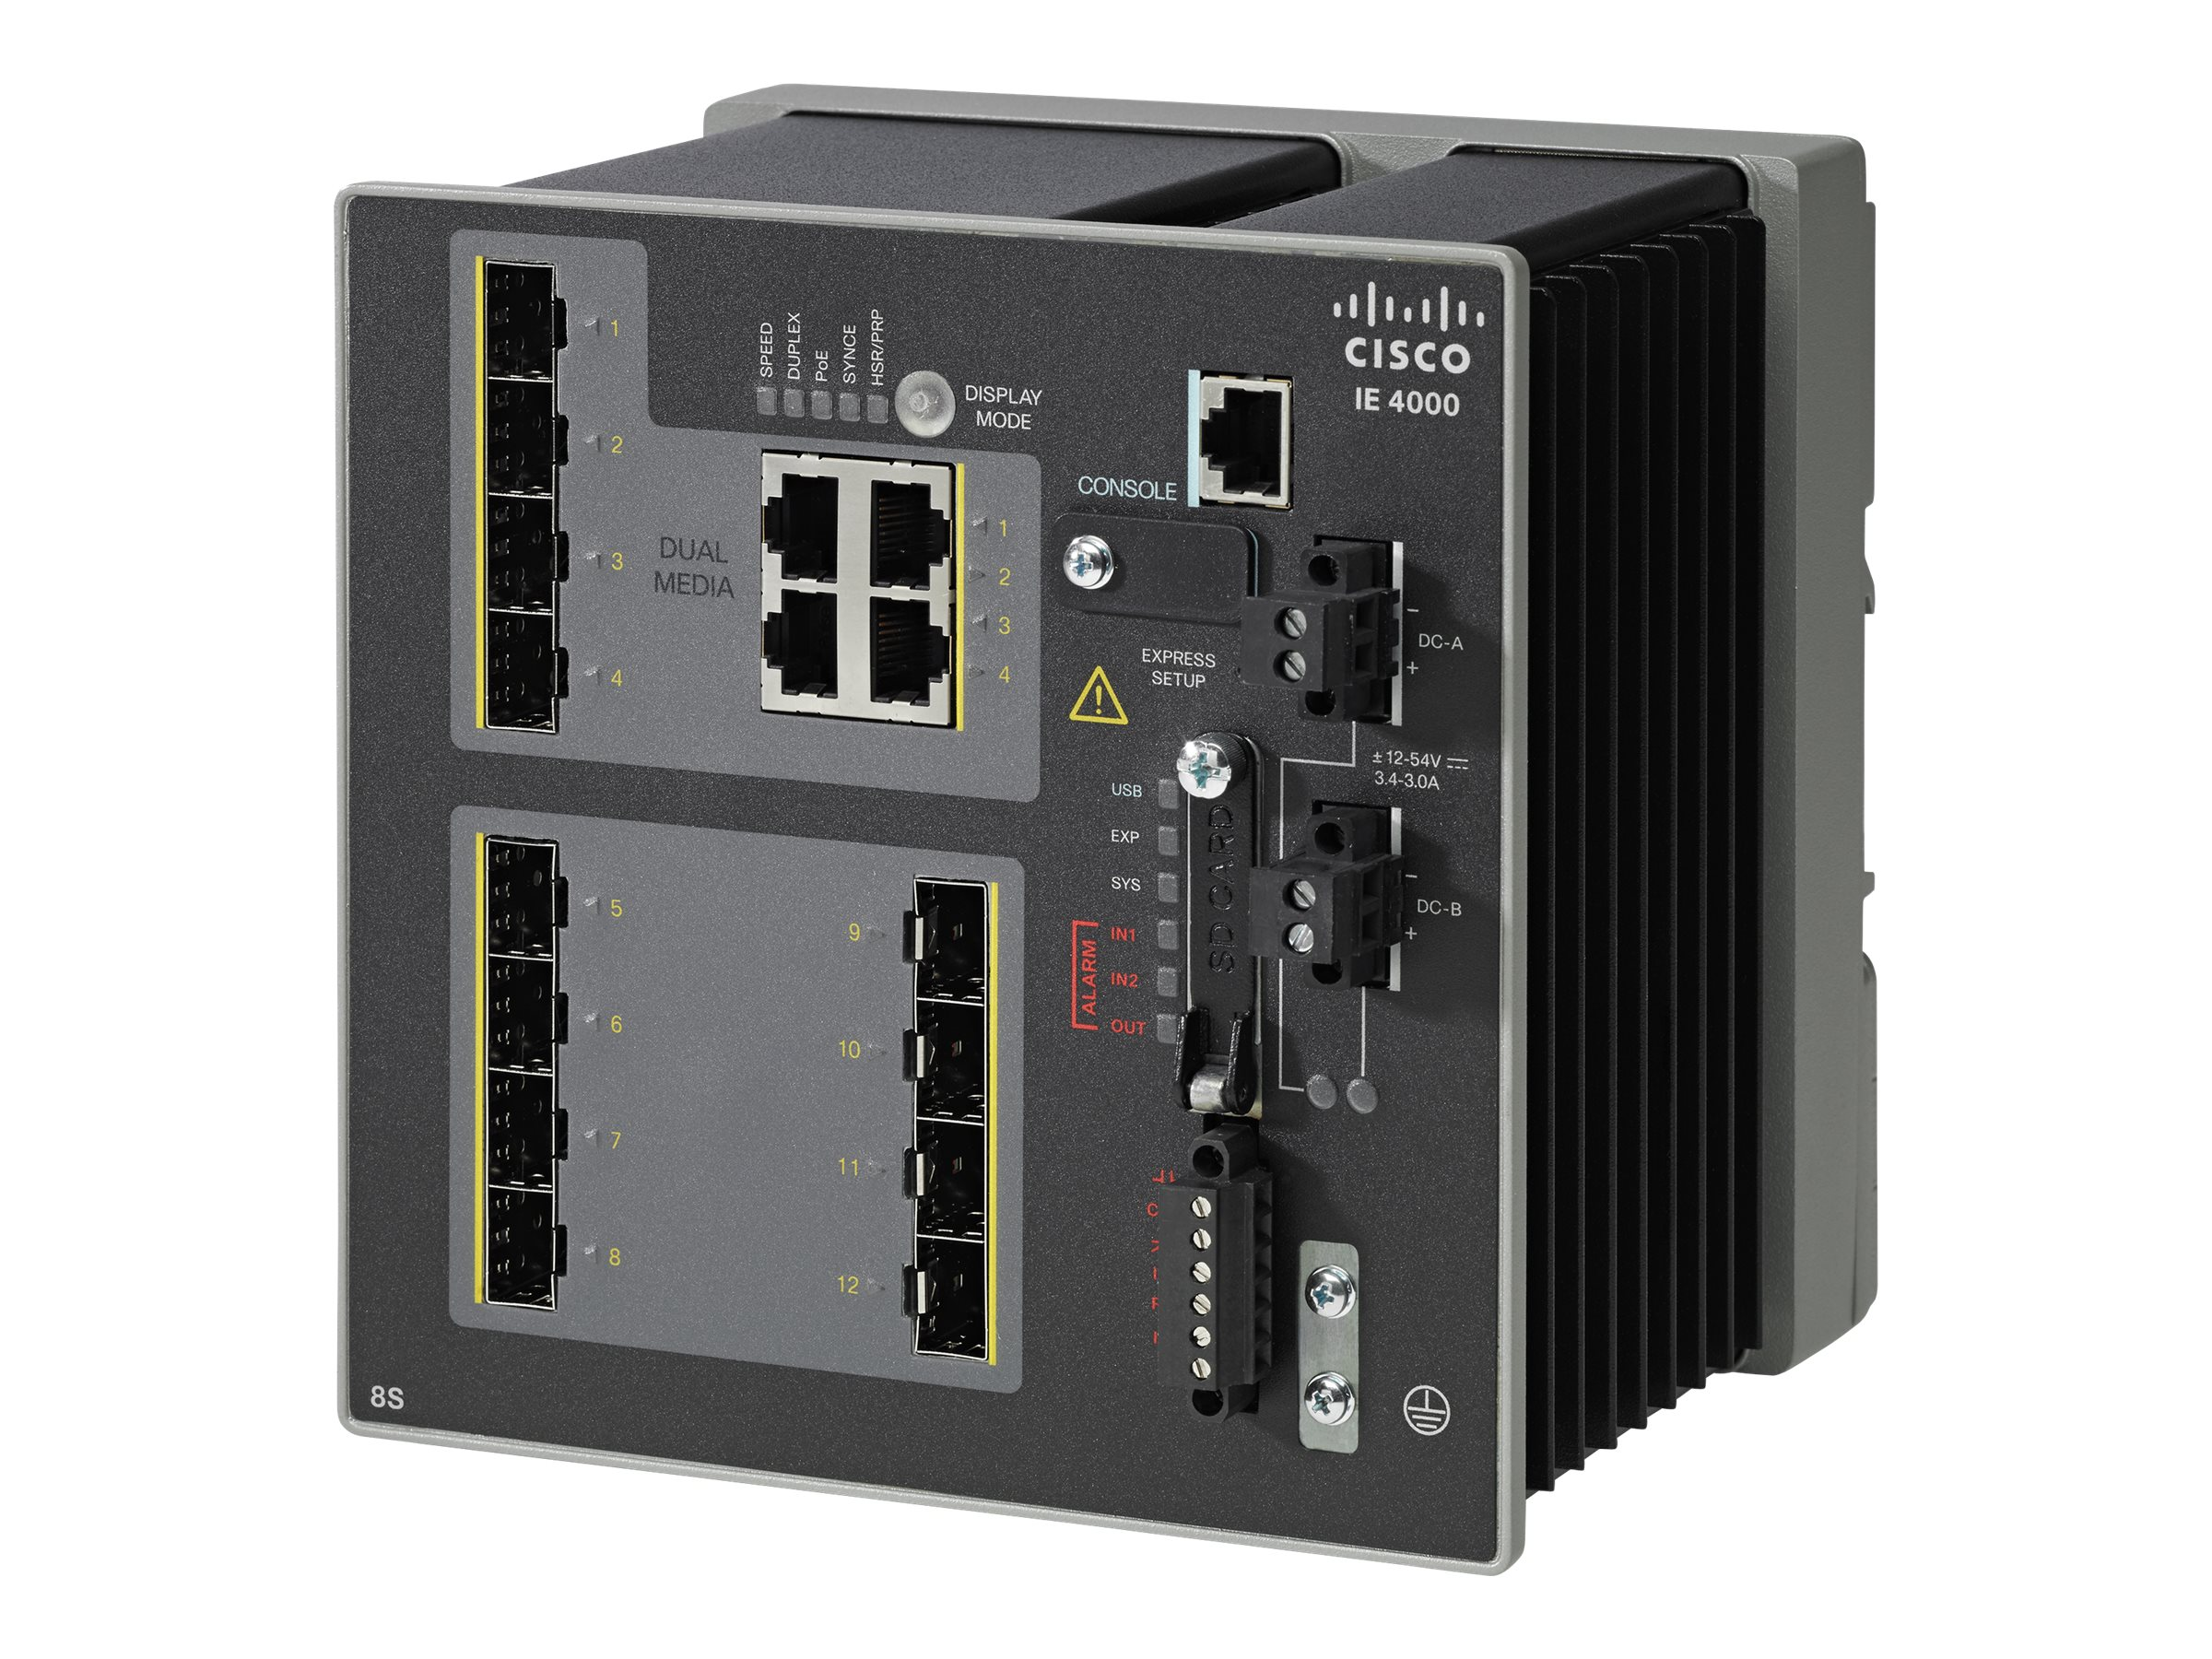 Cisco IE 4000 8X SFP 100M 4X 1G Combo LAN Base Switch